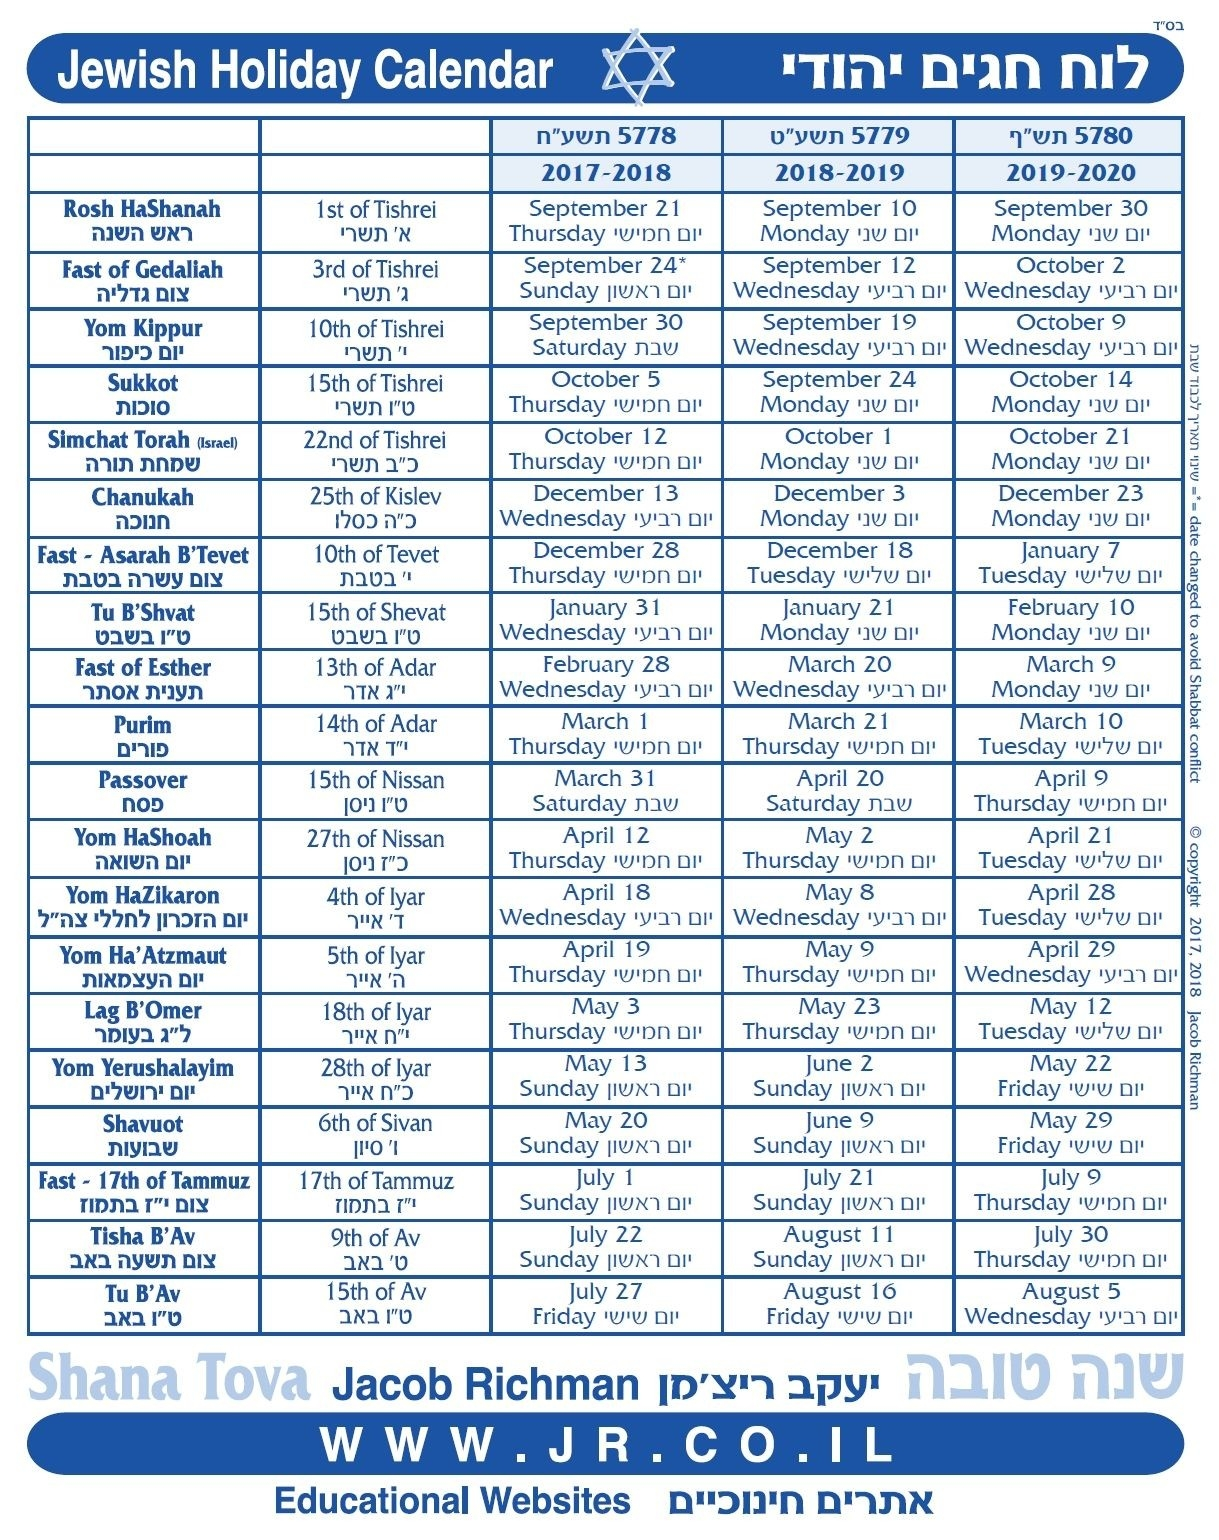 Pin By Jacob Richman On Jedlab Resources   Jewish Holiday-Jewish Calendar For Holidays 2020